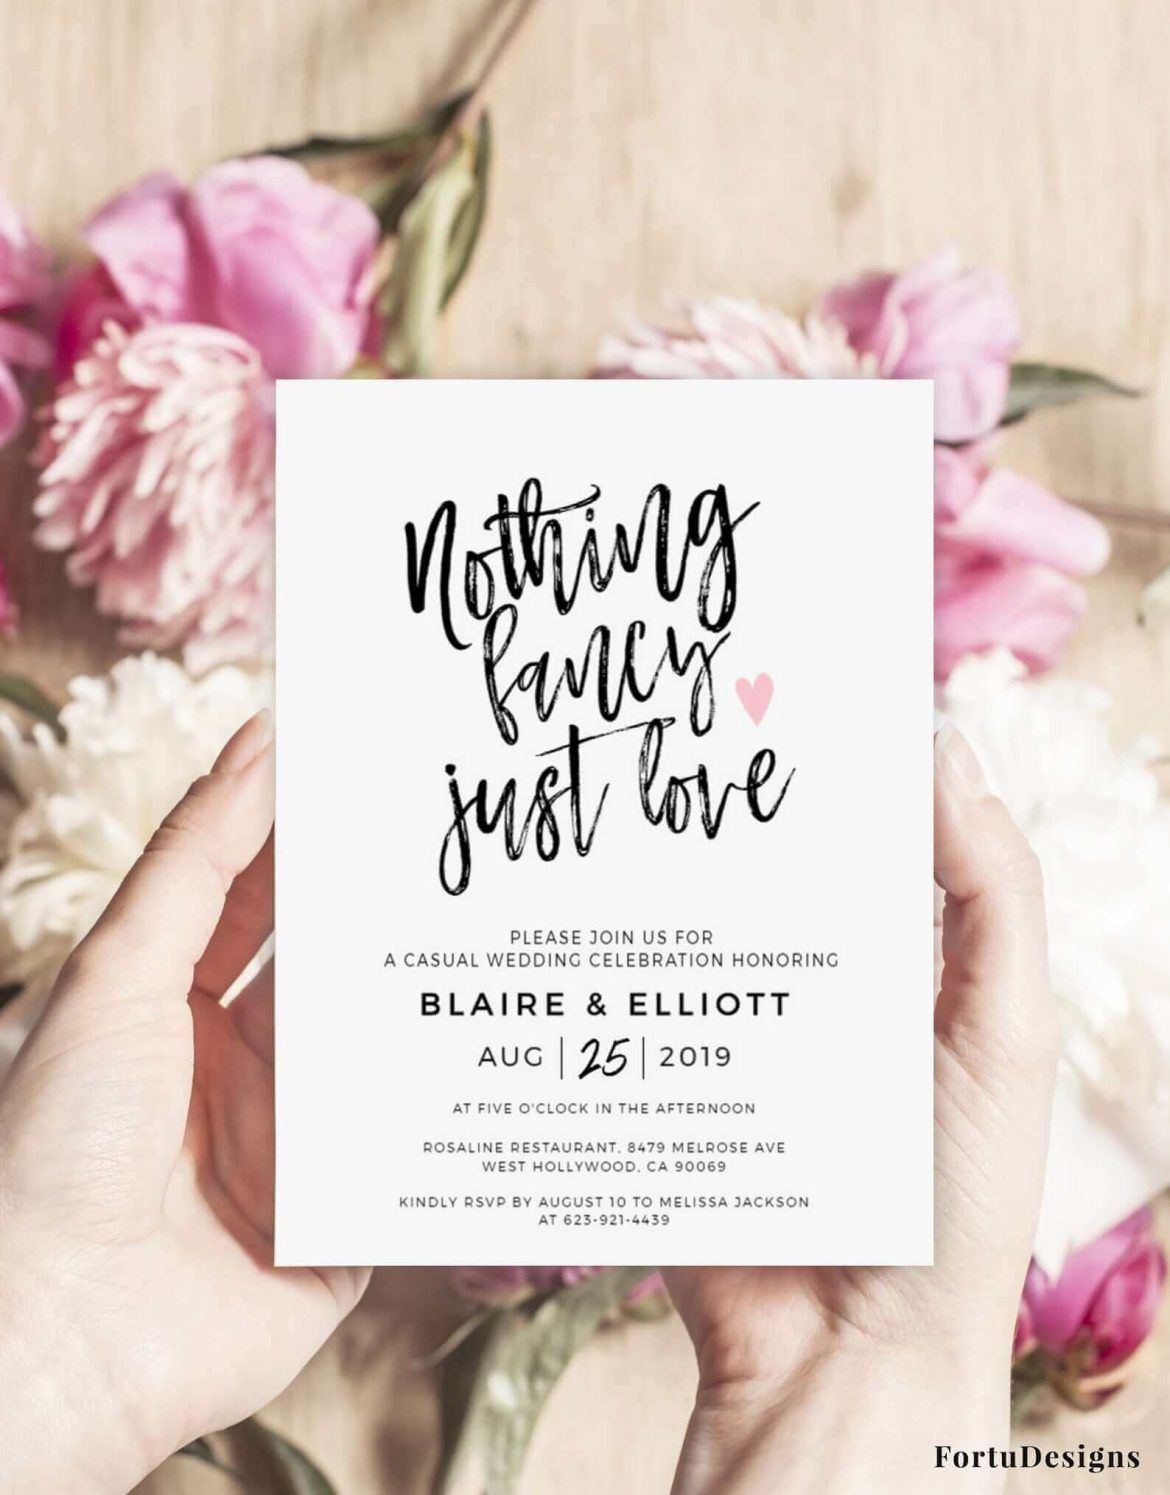 How Soon To Send Out Wedding Invites Emmaline Bride Funny Wedding Invitations Reception Invitations Wedding Invitations Diy